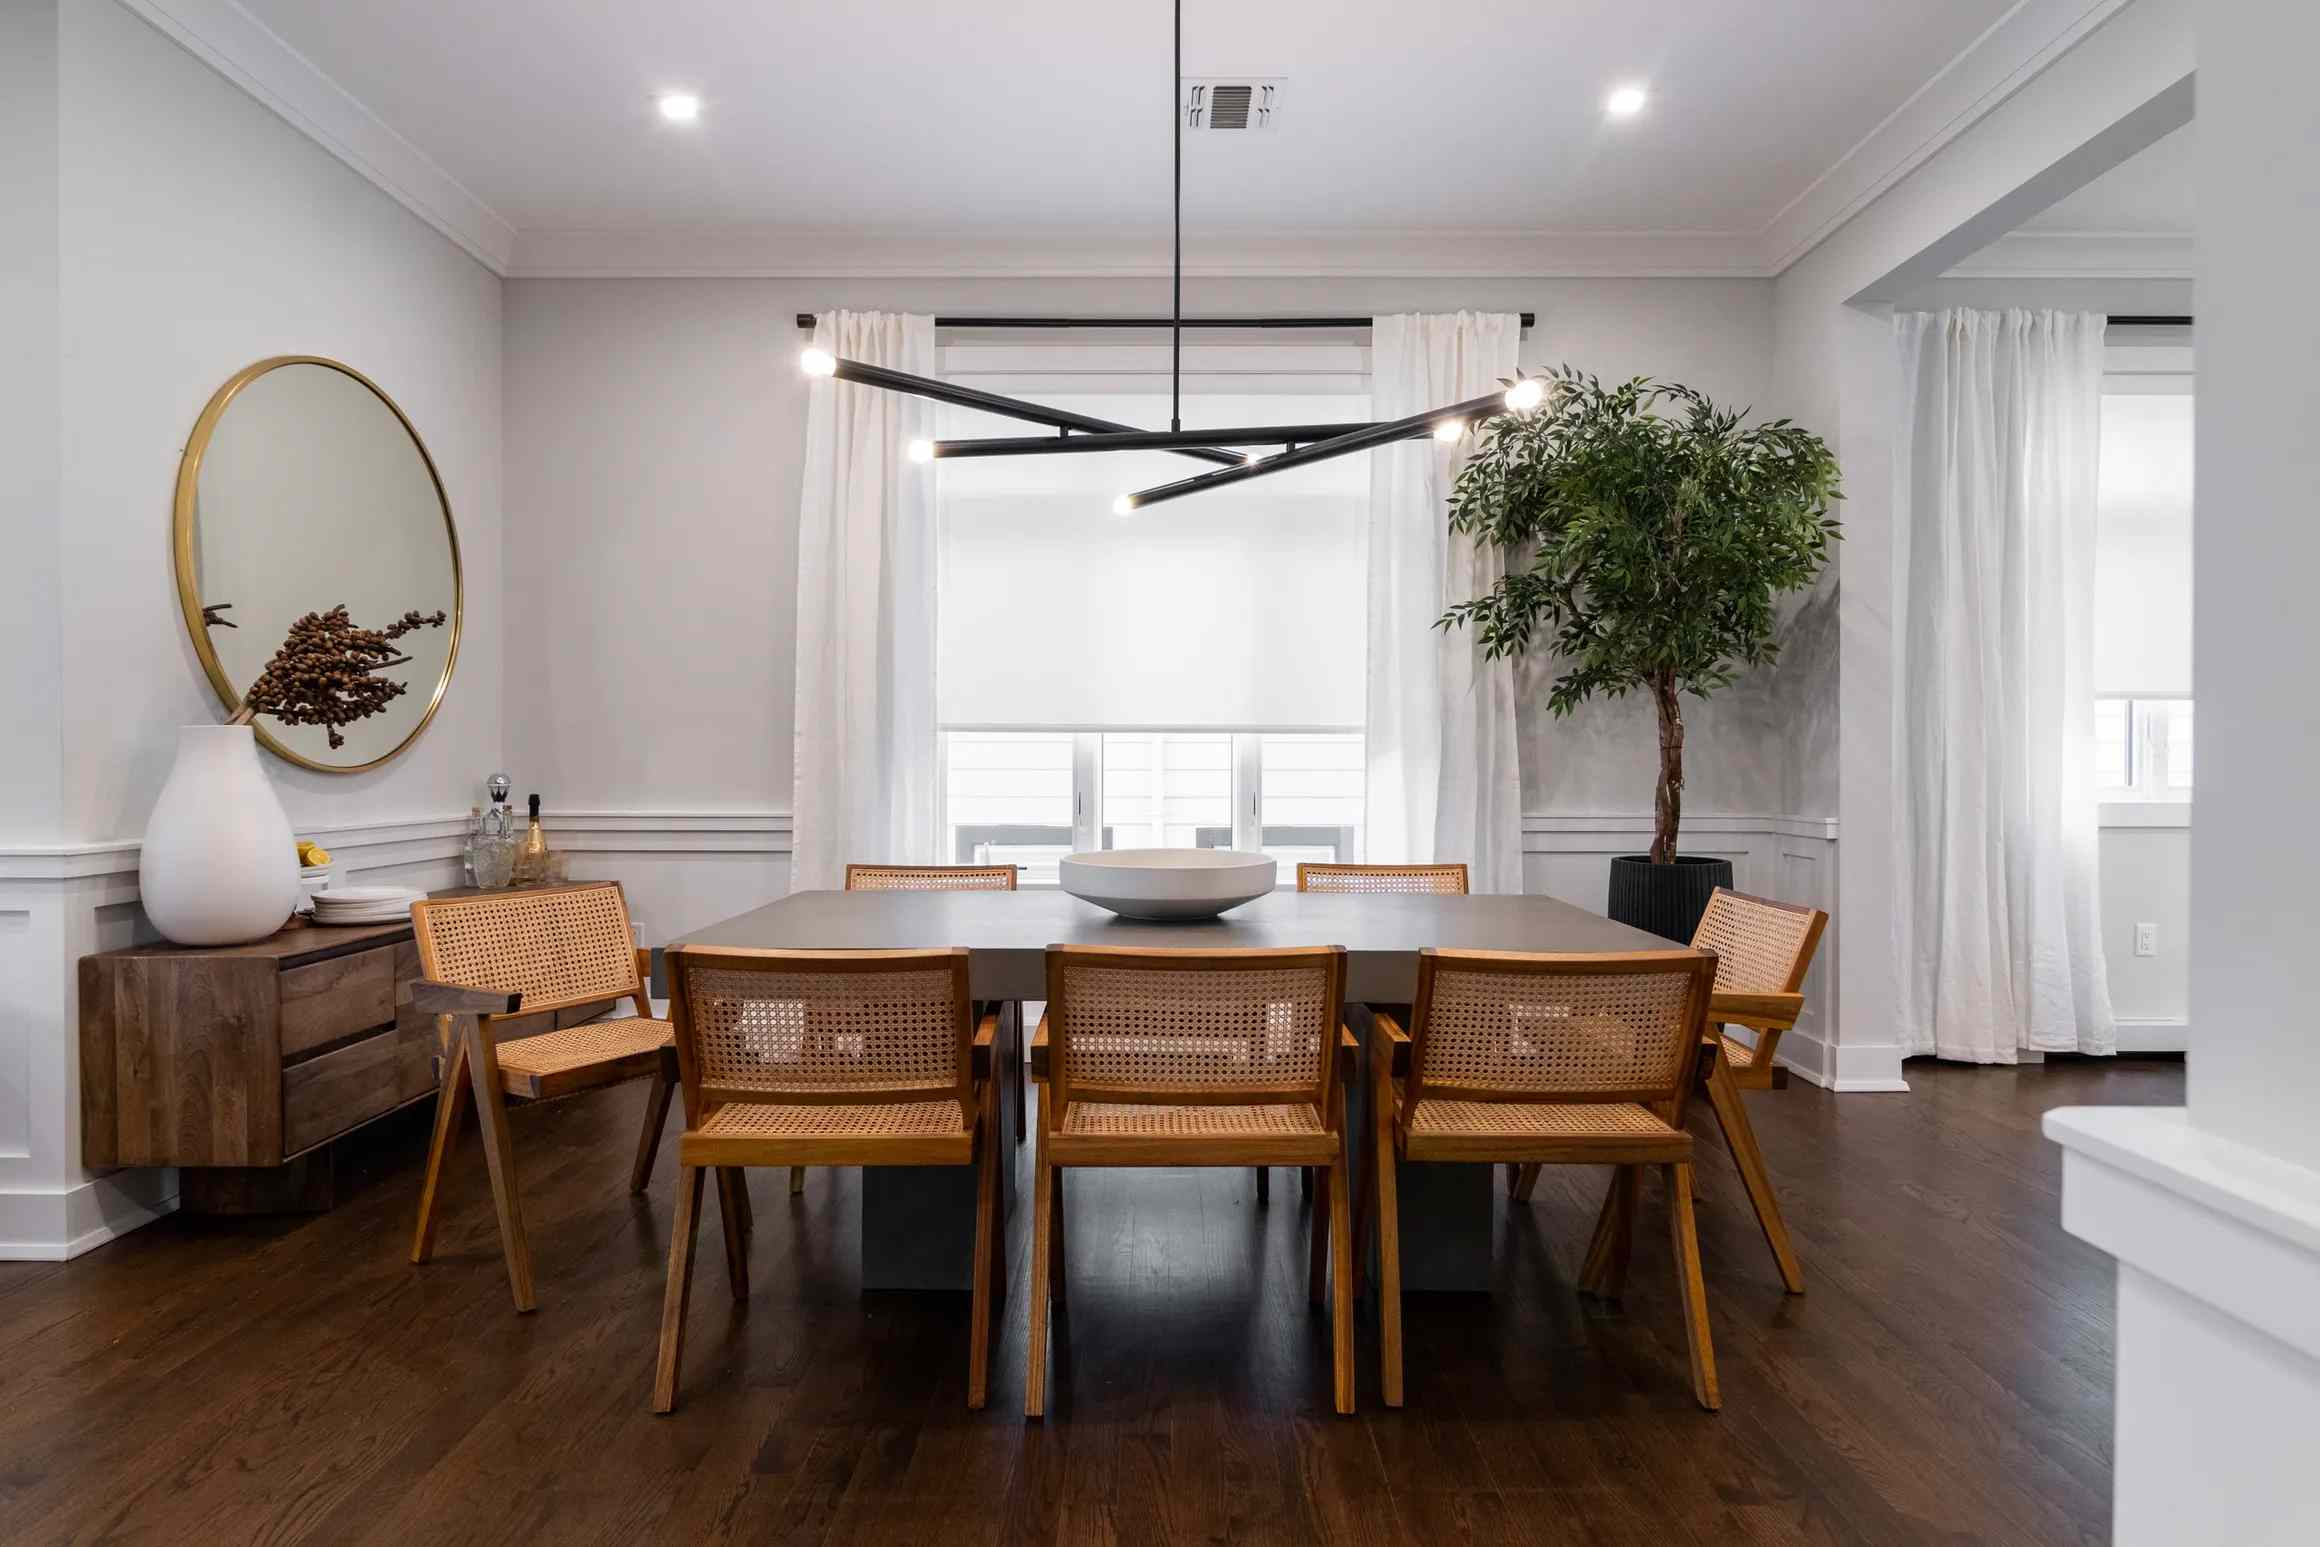 High end dining room with modern light fixture.